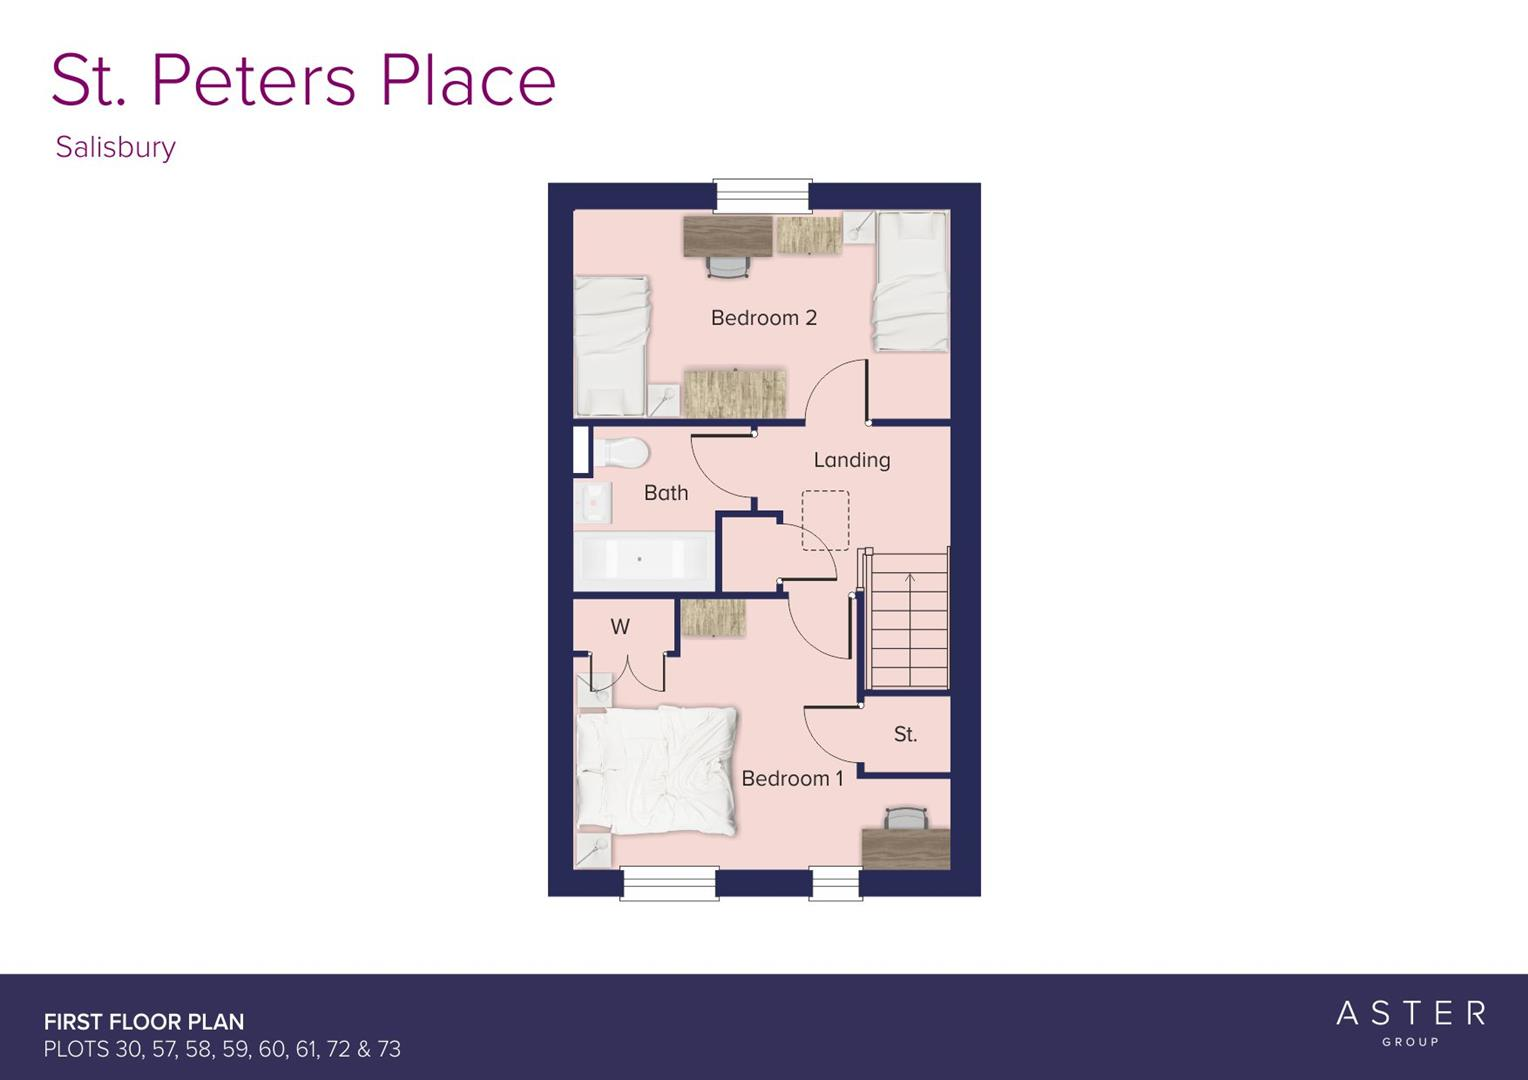 St. Peters Place, Salisbury_Plots 30, 57, 58, 59,